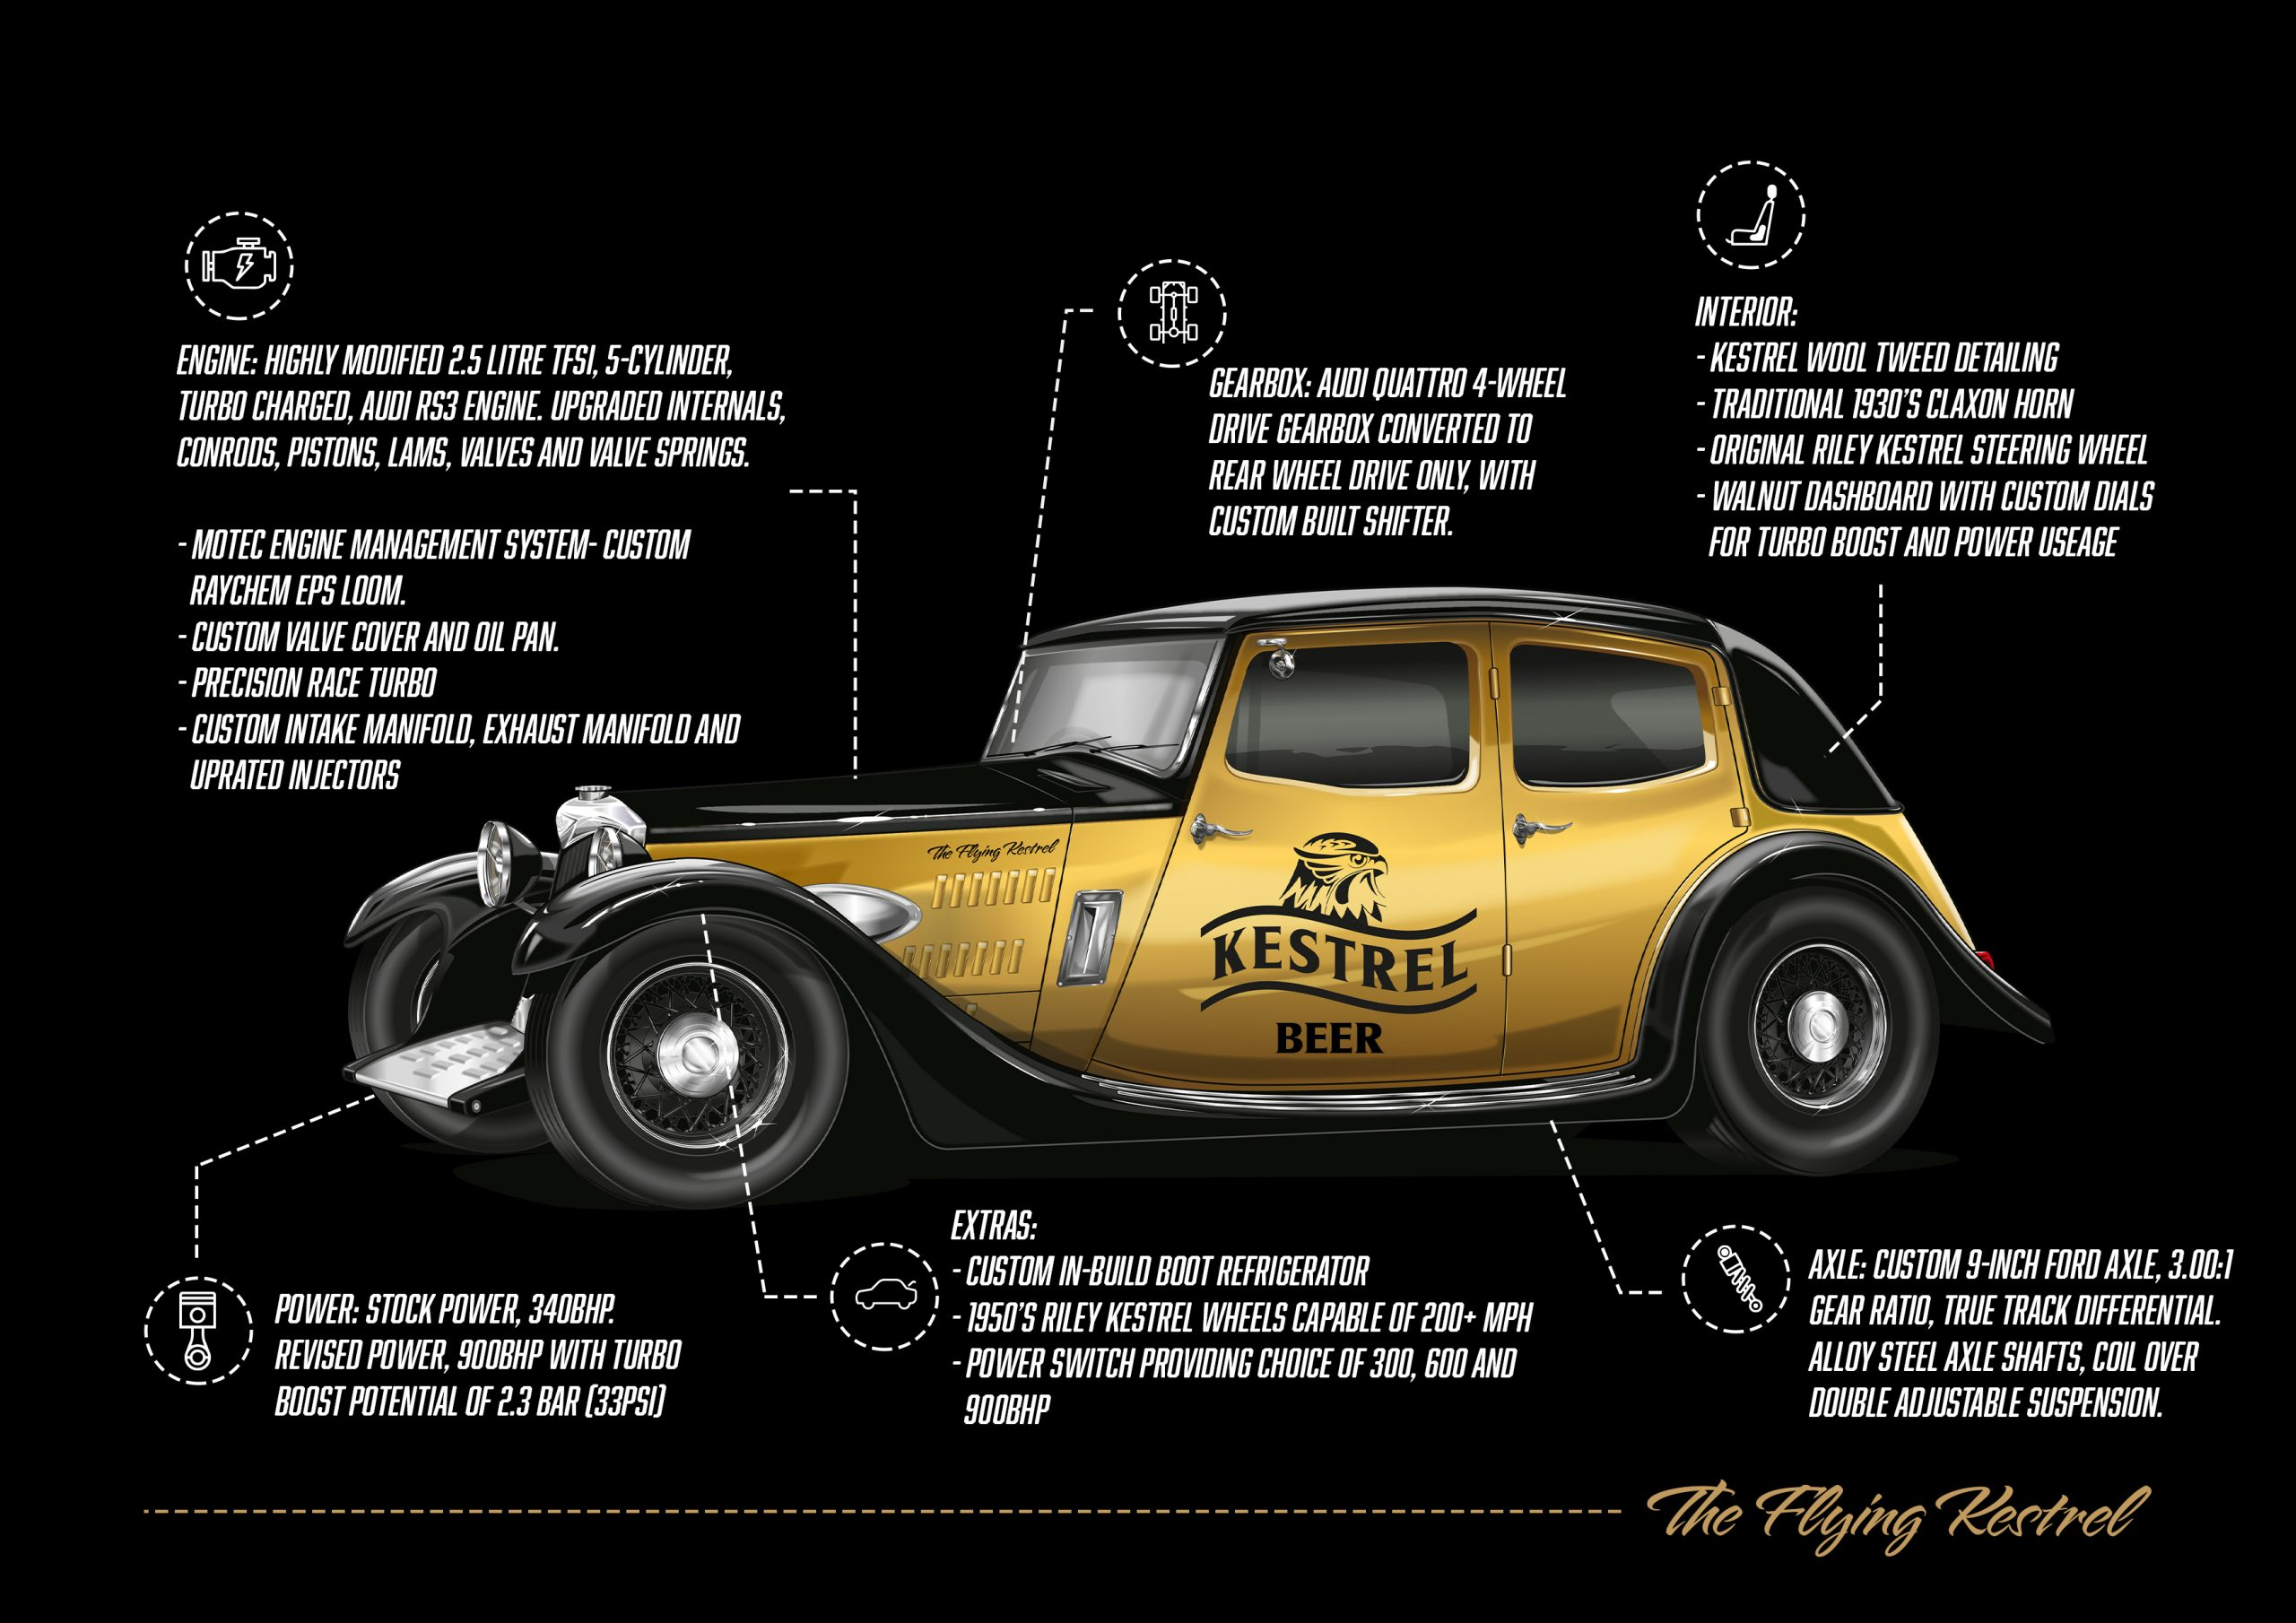 //theflyingkestrel.com/wp-content/uploads/2020/11/The-Flying-Kestrel-Car-final-copy-scaled.jpg